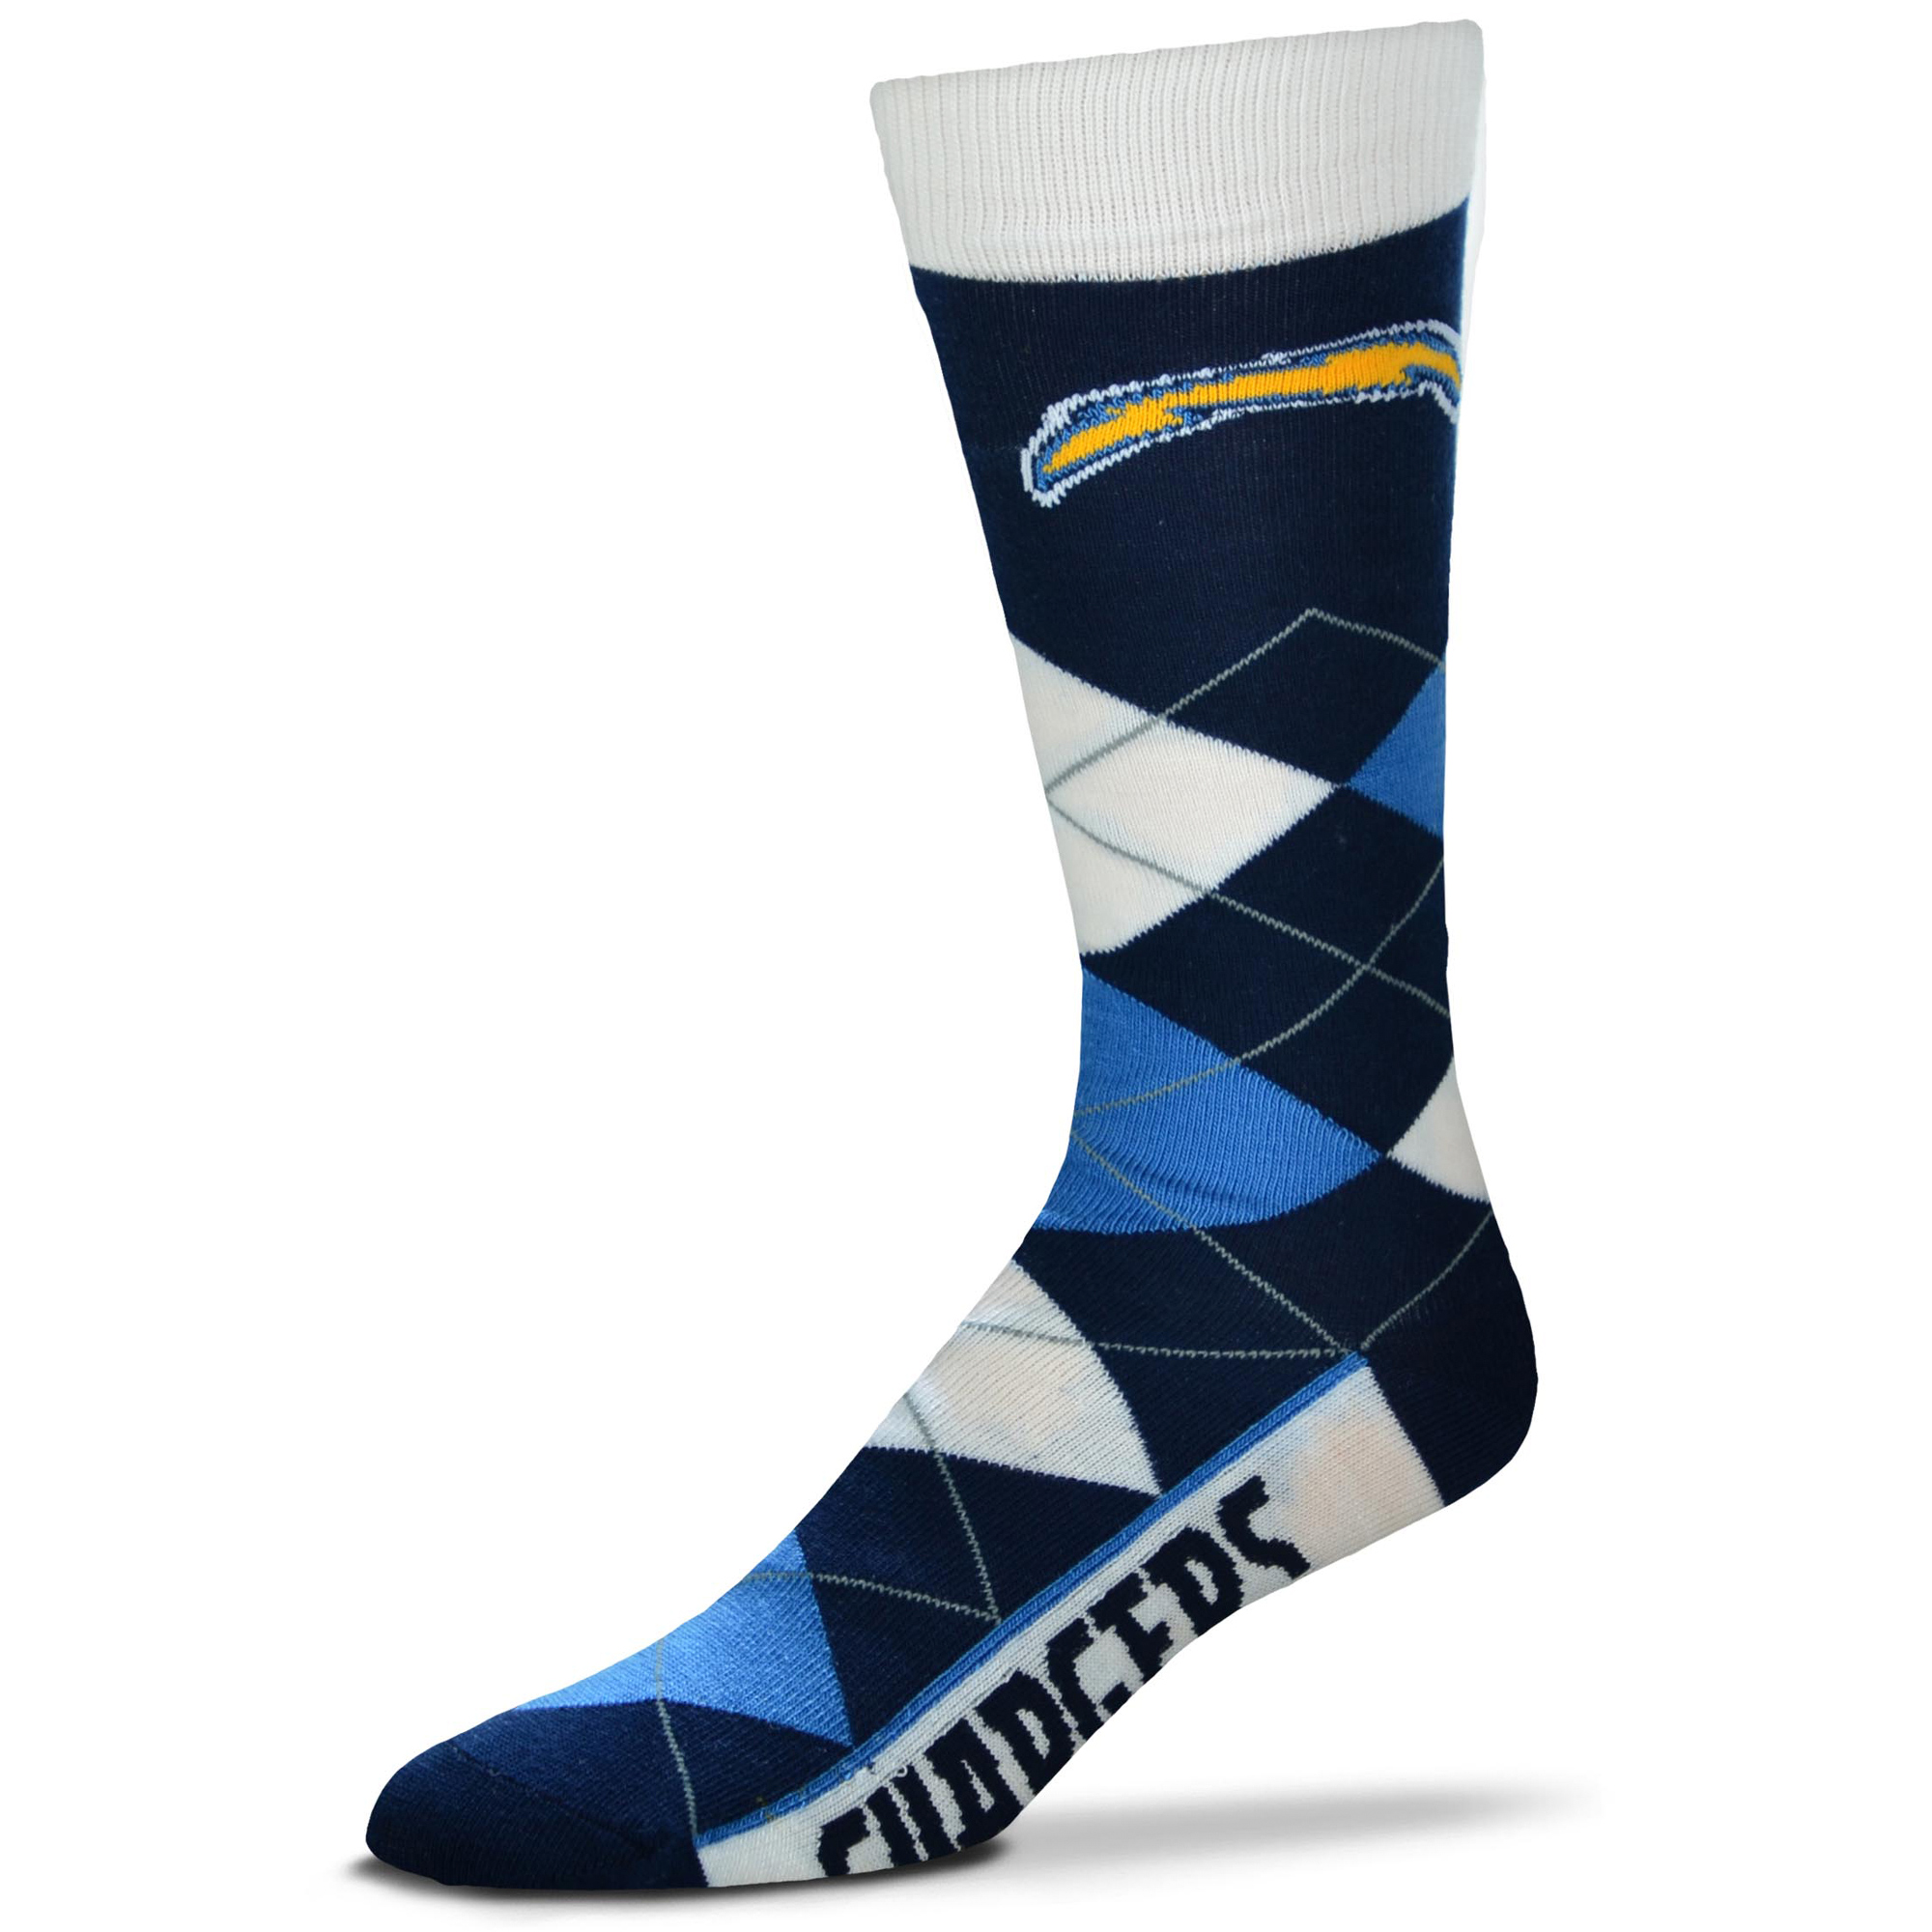 Los Angeles Chargers For Bare Feet Argyle Crew Socks - No Size